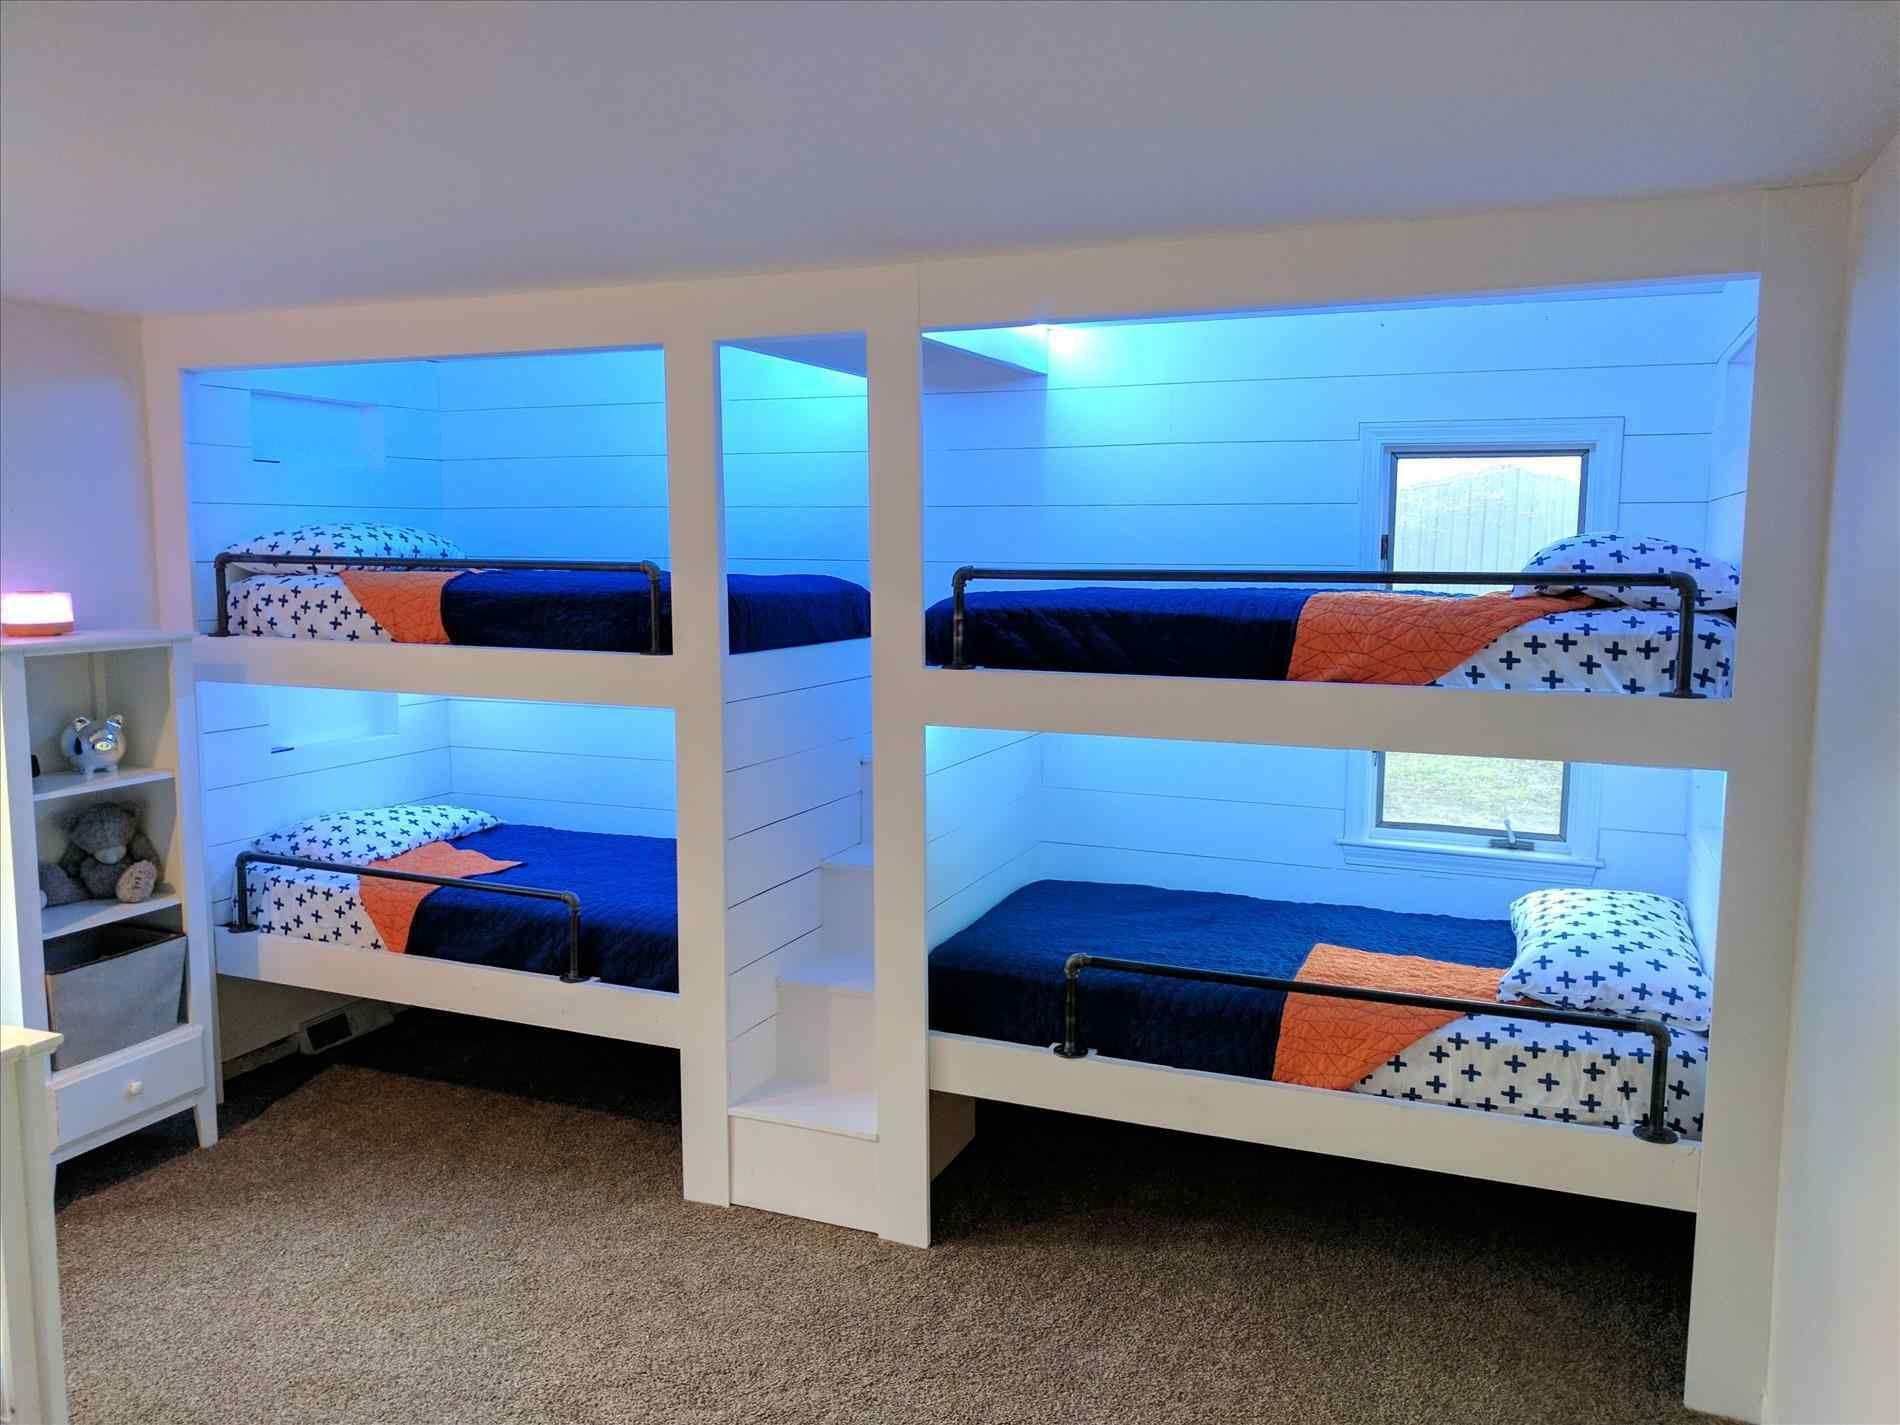 4 Bunk Beds In Wall Bunk Beds Built In Cool Bunk Beds Bunk Bed